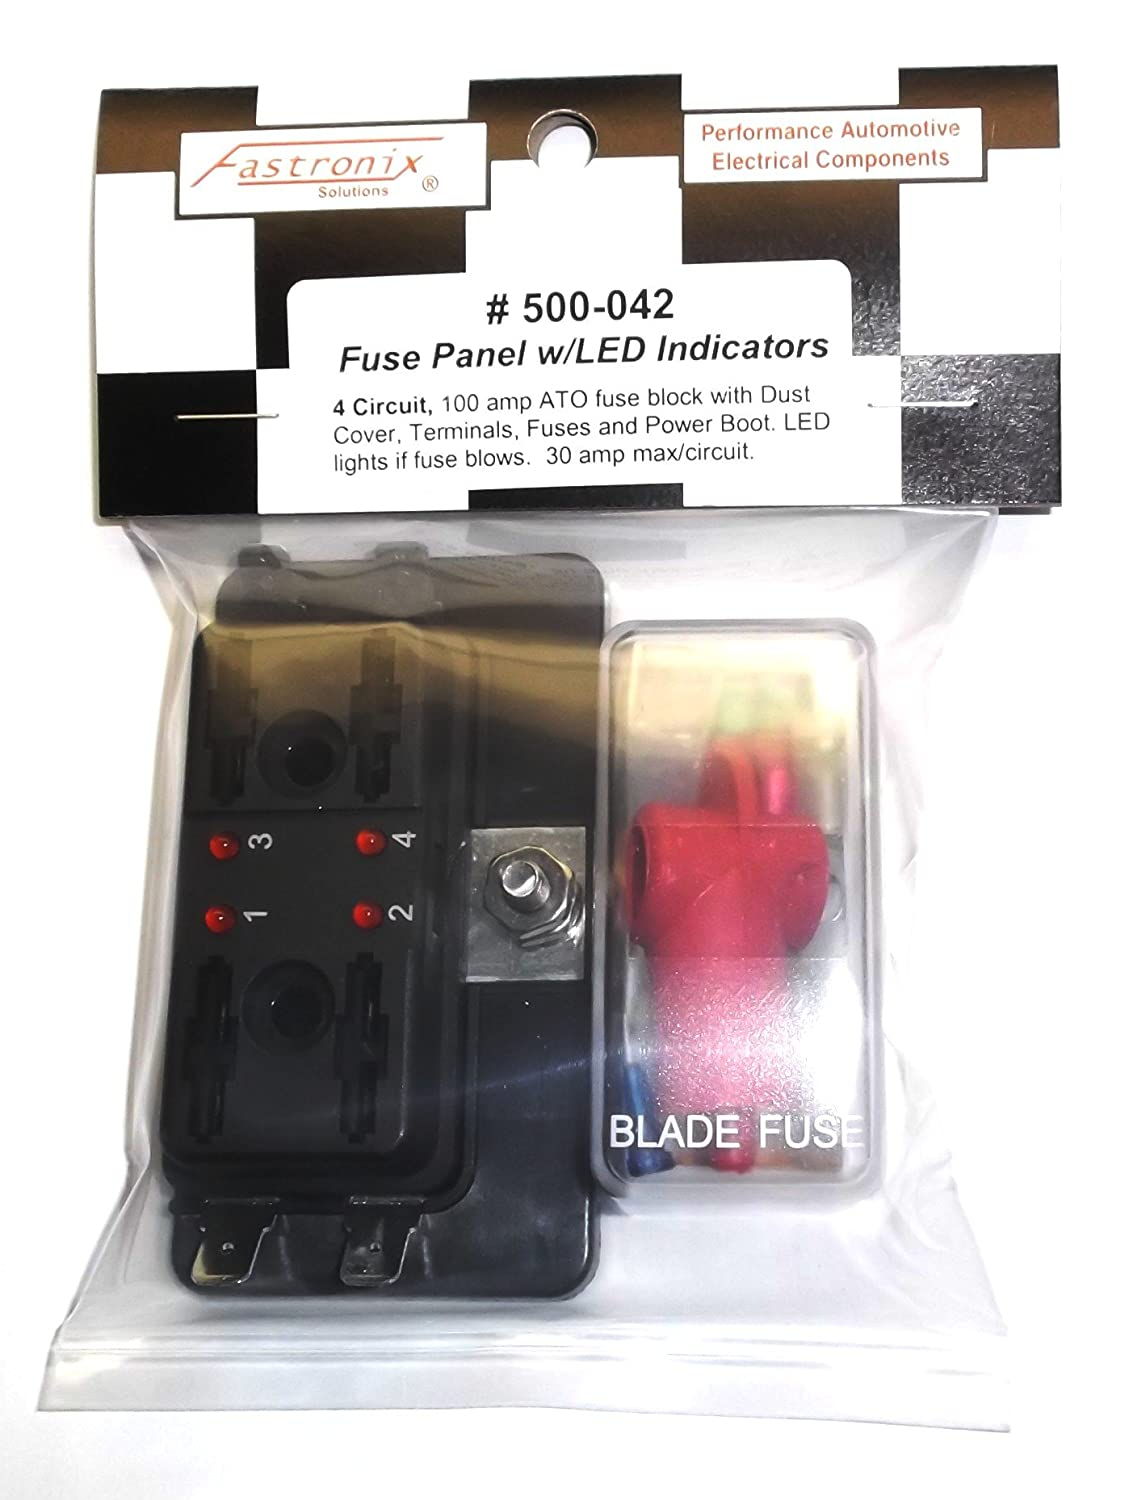 Fastronix 4 Circuit Led Fuse Block And Cover Kit With Aprilia Box Ato Atc Fuses Automotive